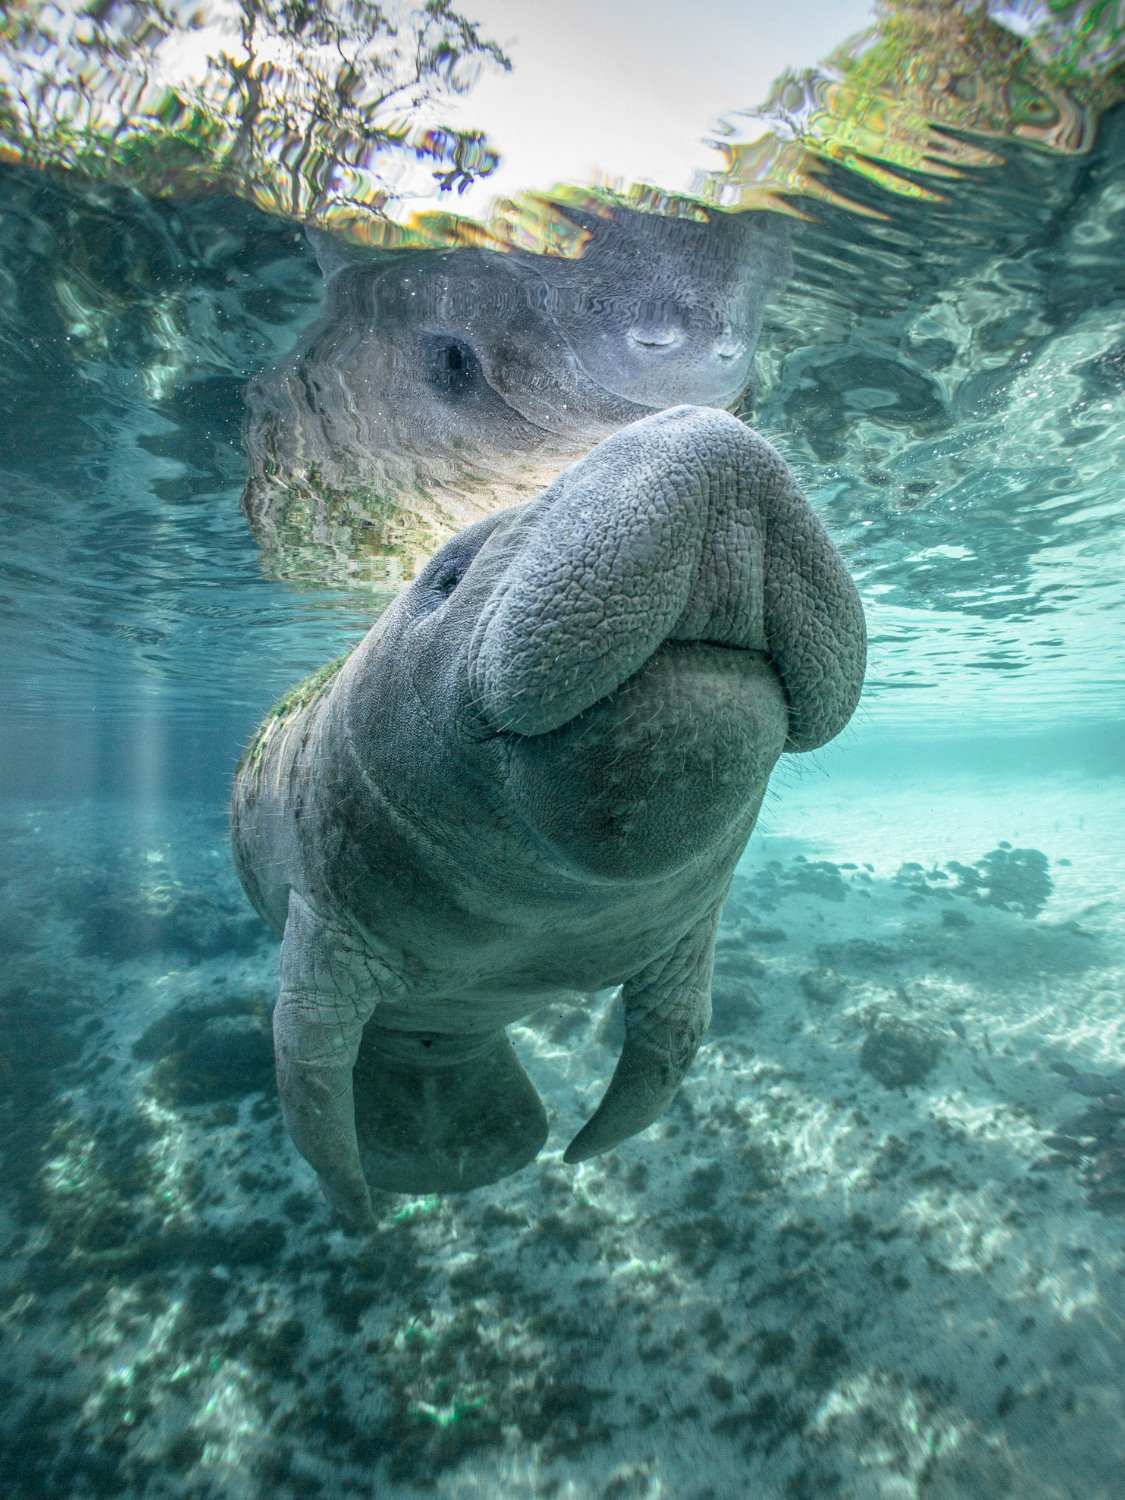 Manatee Crystal River